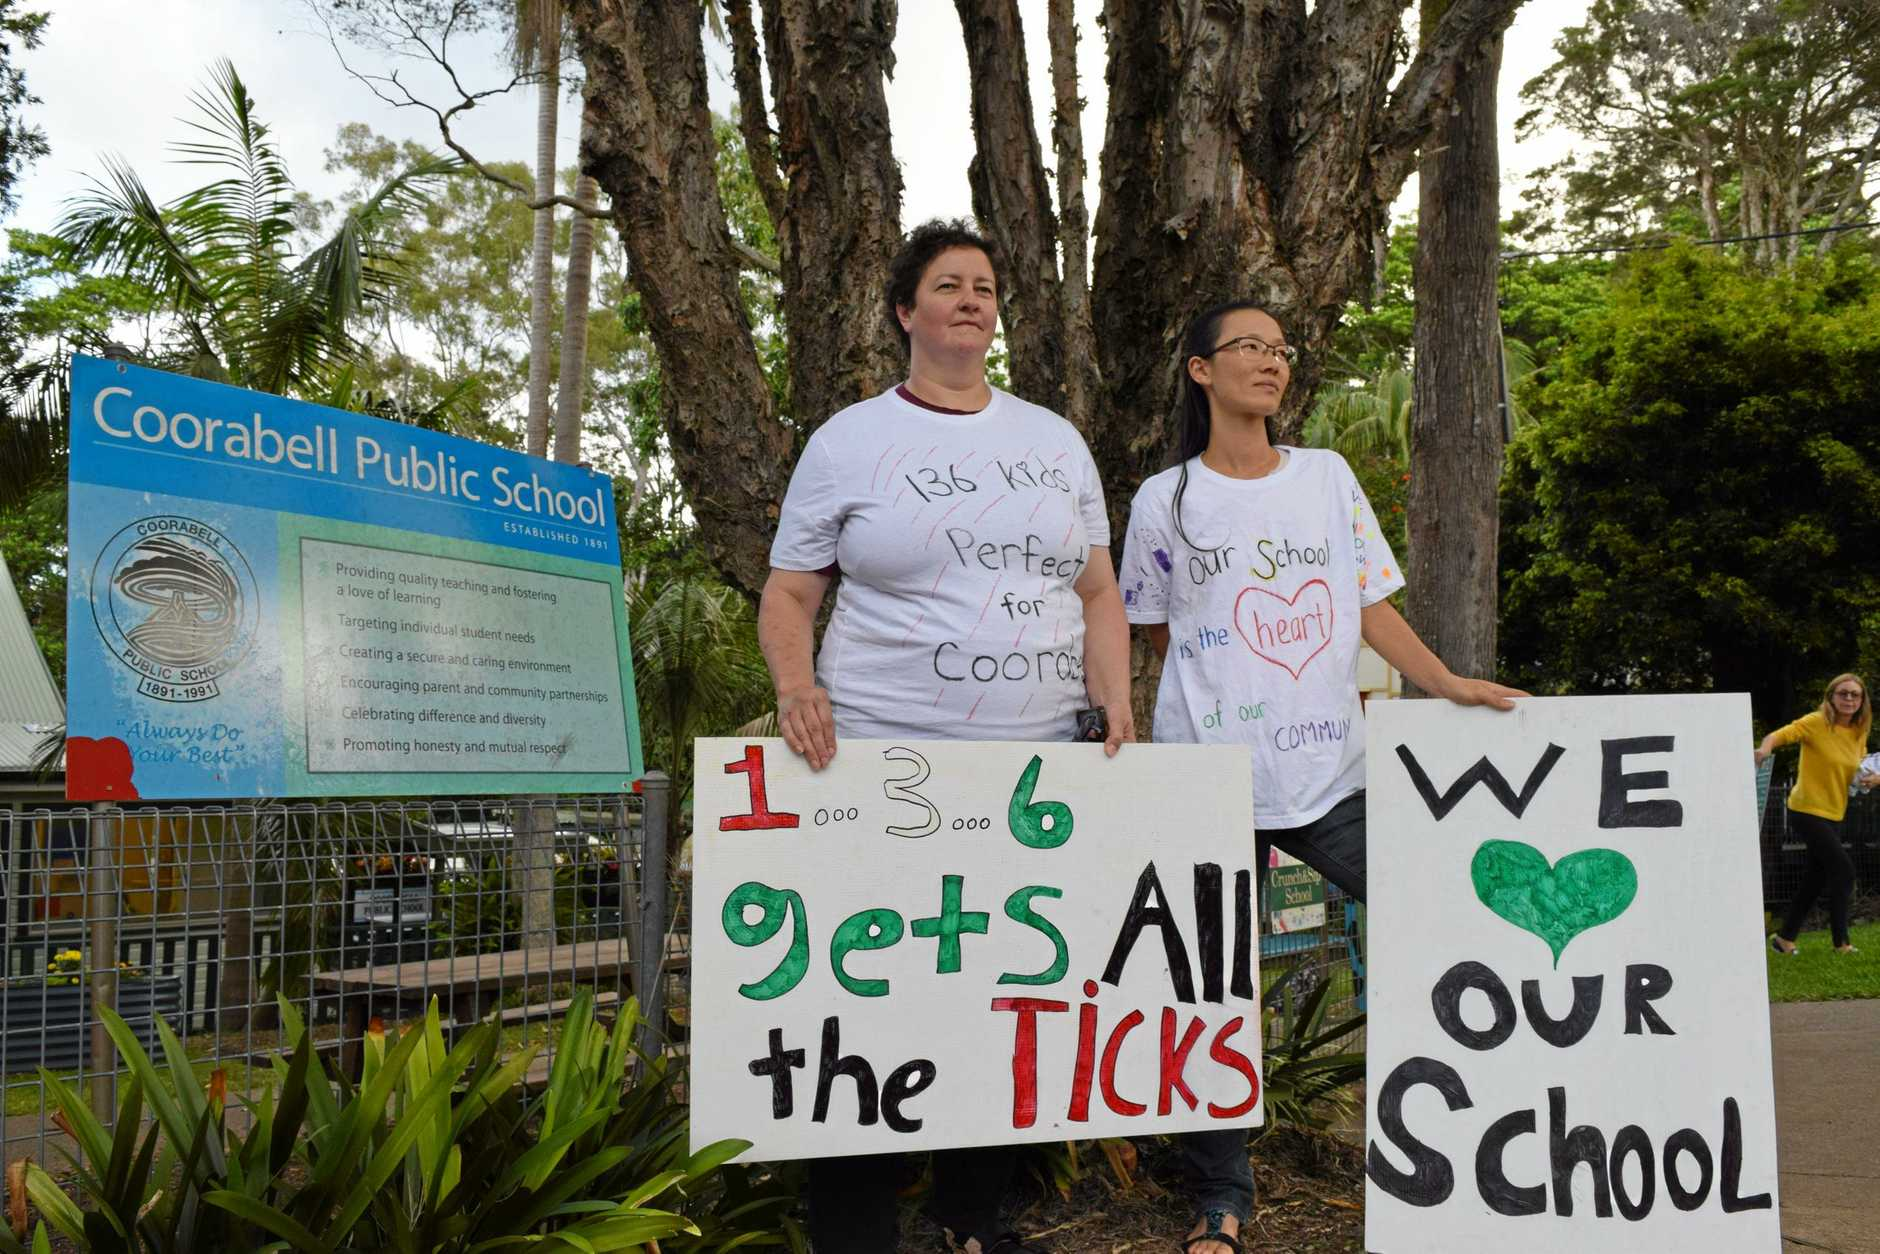 Coorabel Public School P&C Association have been forced to start a fundraising campaign to pay the wages of one of the school's beloved teachers in response to new regulations by The Department of Education which will radically reduce the size of the school.